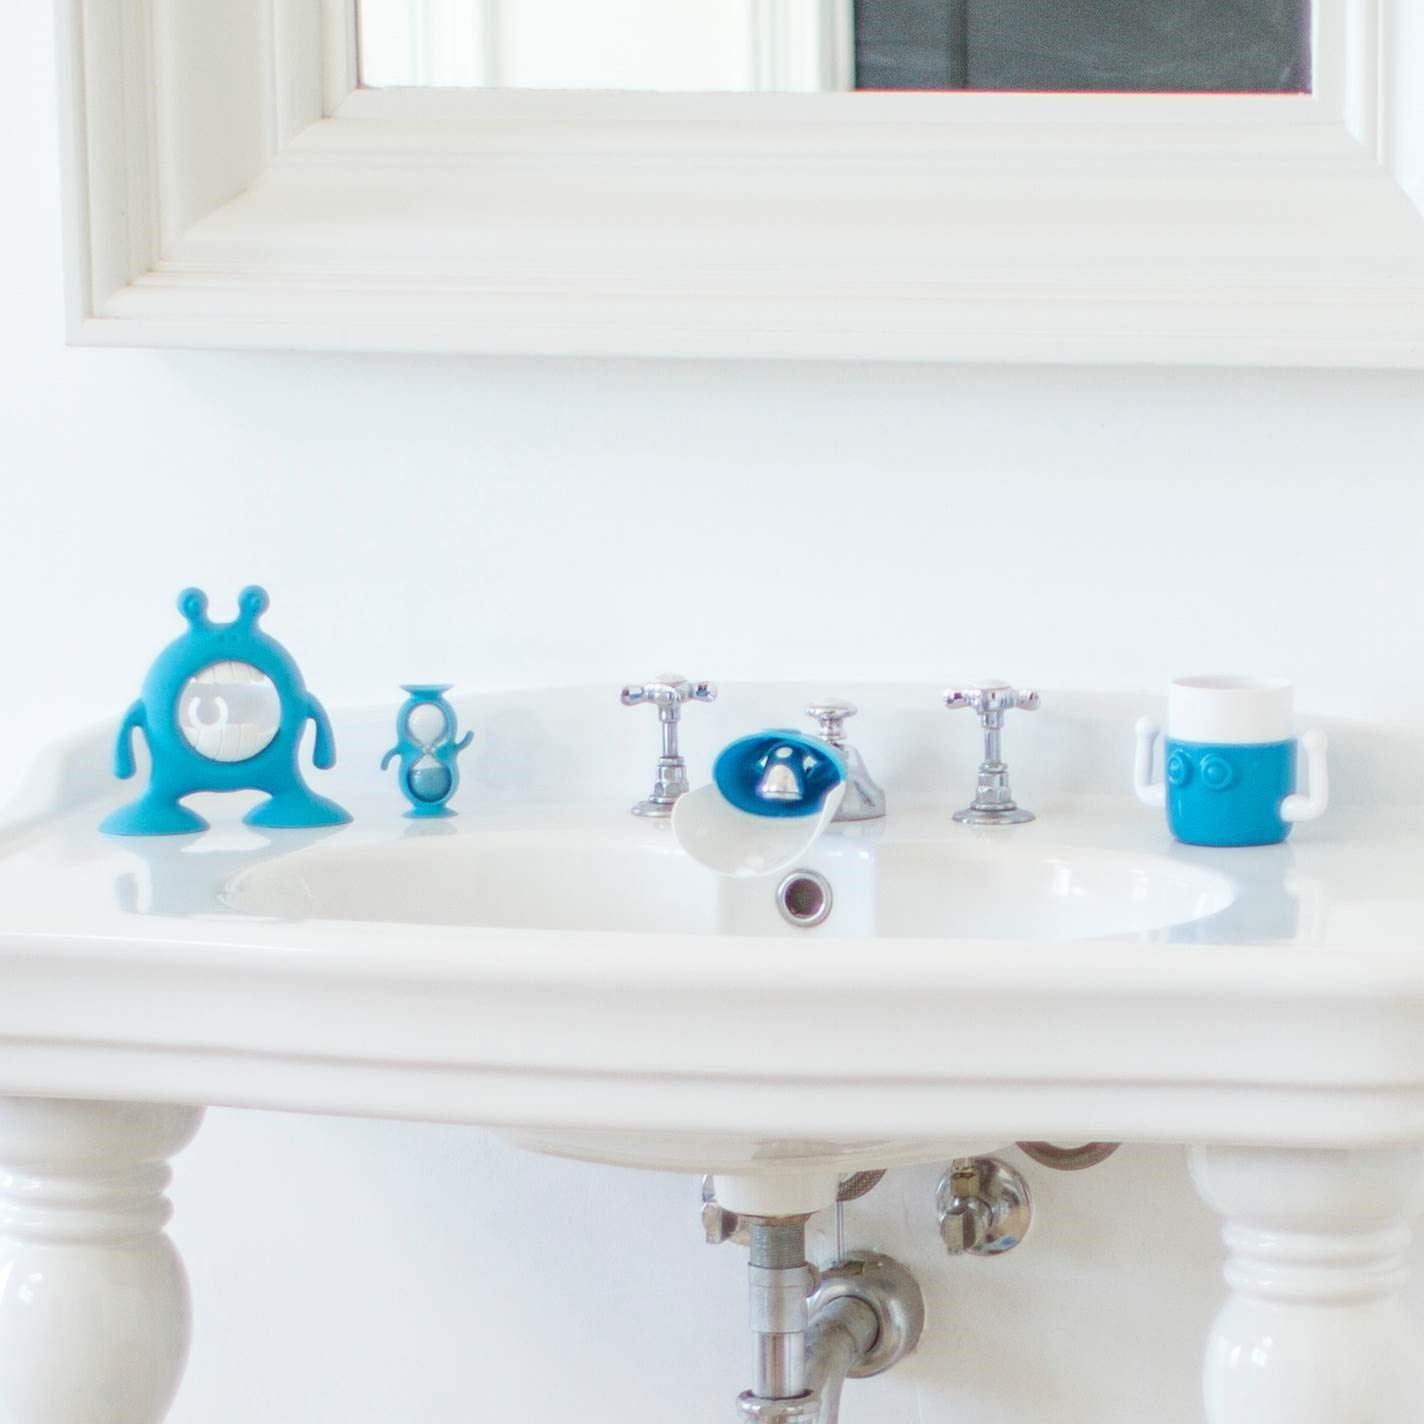 Prince Lionheart eyeFAMILY (Berry Blue), Toddler Bathroom Set, Includes a 1 MinuteTimer, Cup, Toothbrush & Toothpaste Holder, Faucet Extender - Children's Bathroom Essential by Prince Lionheart